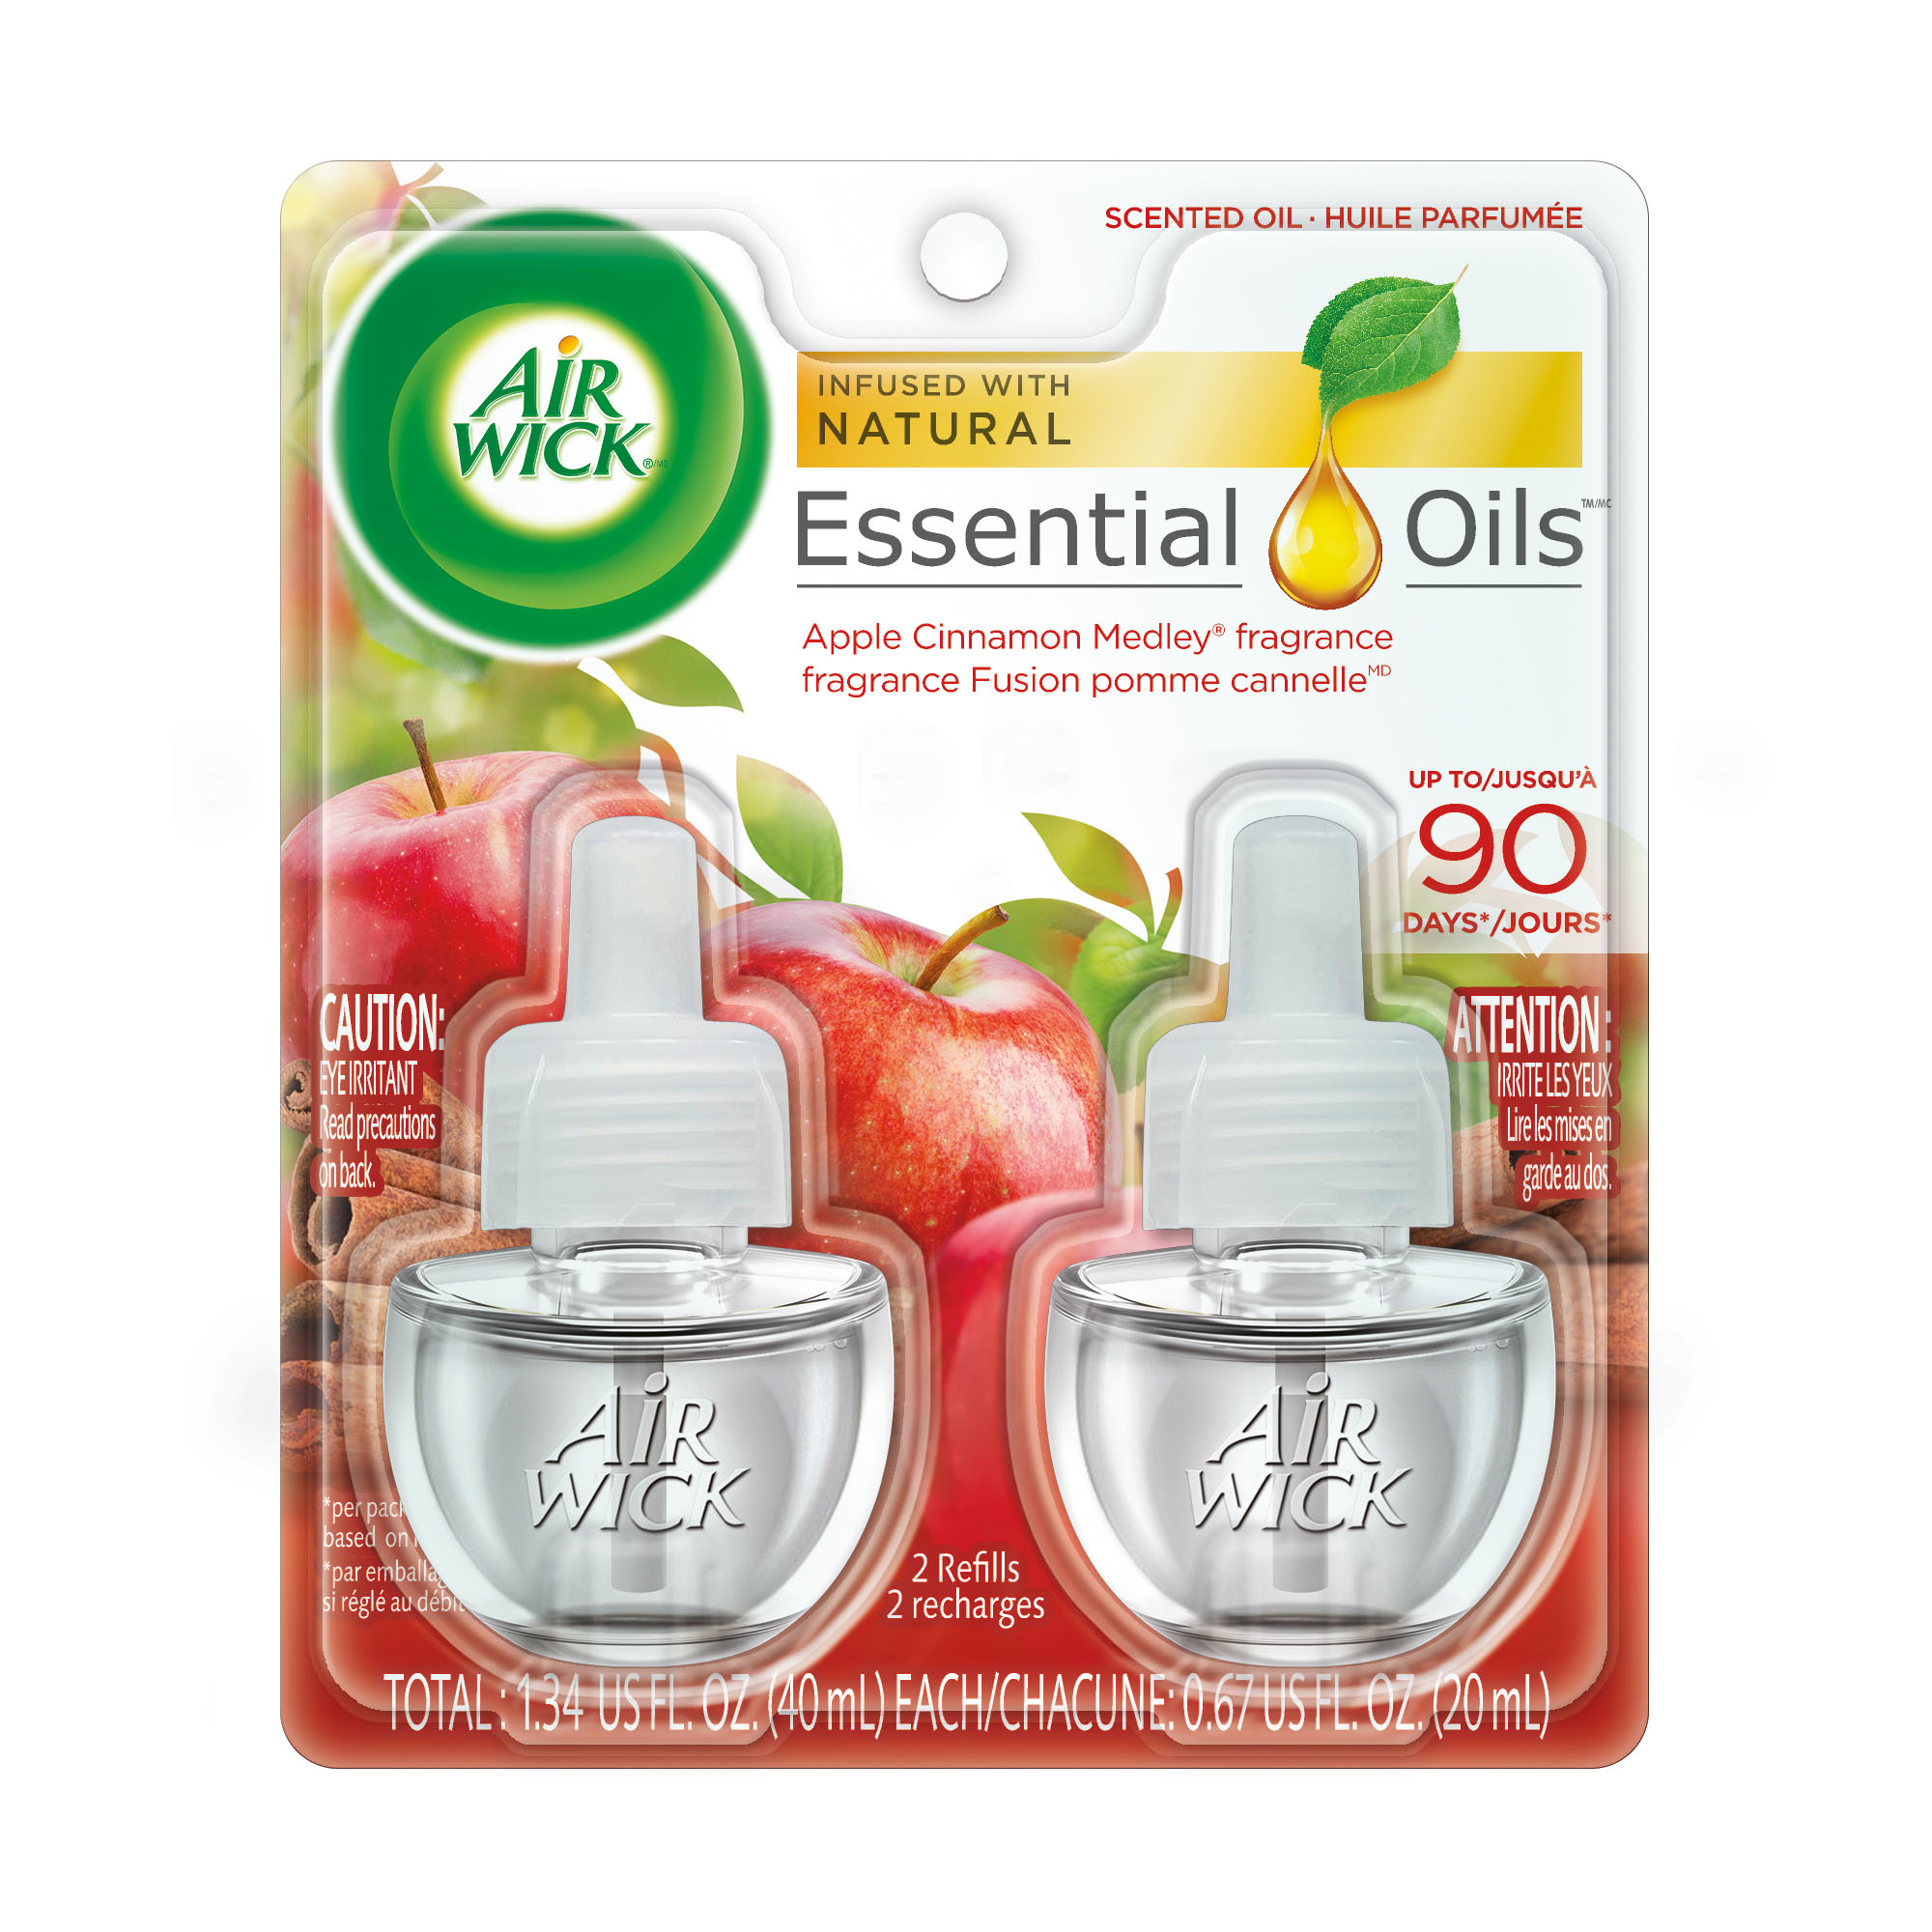 Air Wick Scented Oil 2 Refills, Apple Cinnamon Medley, (2X0.67oz), Air Freshener